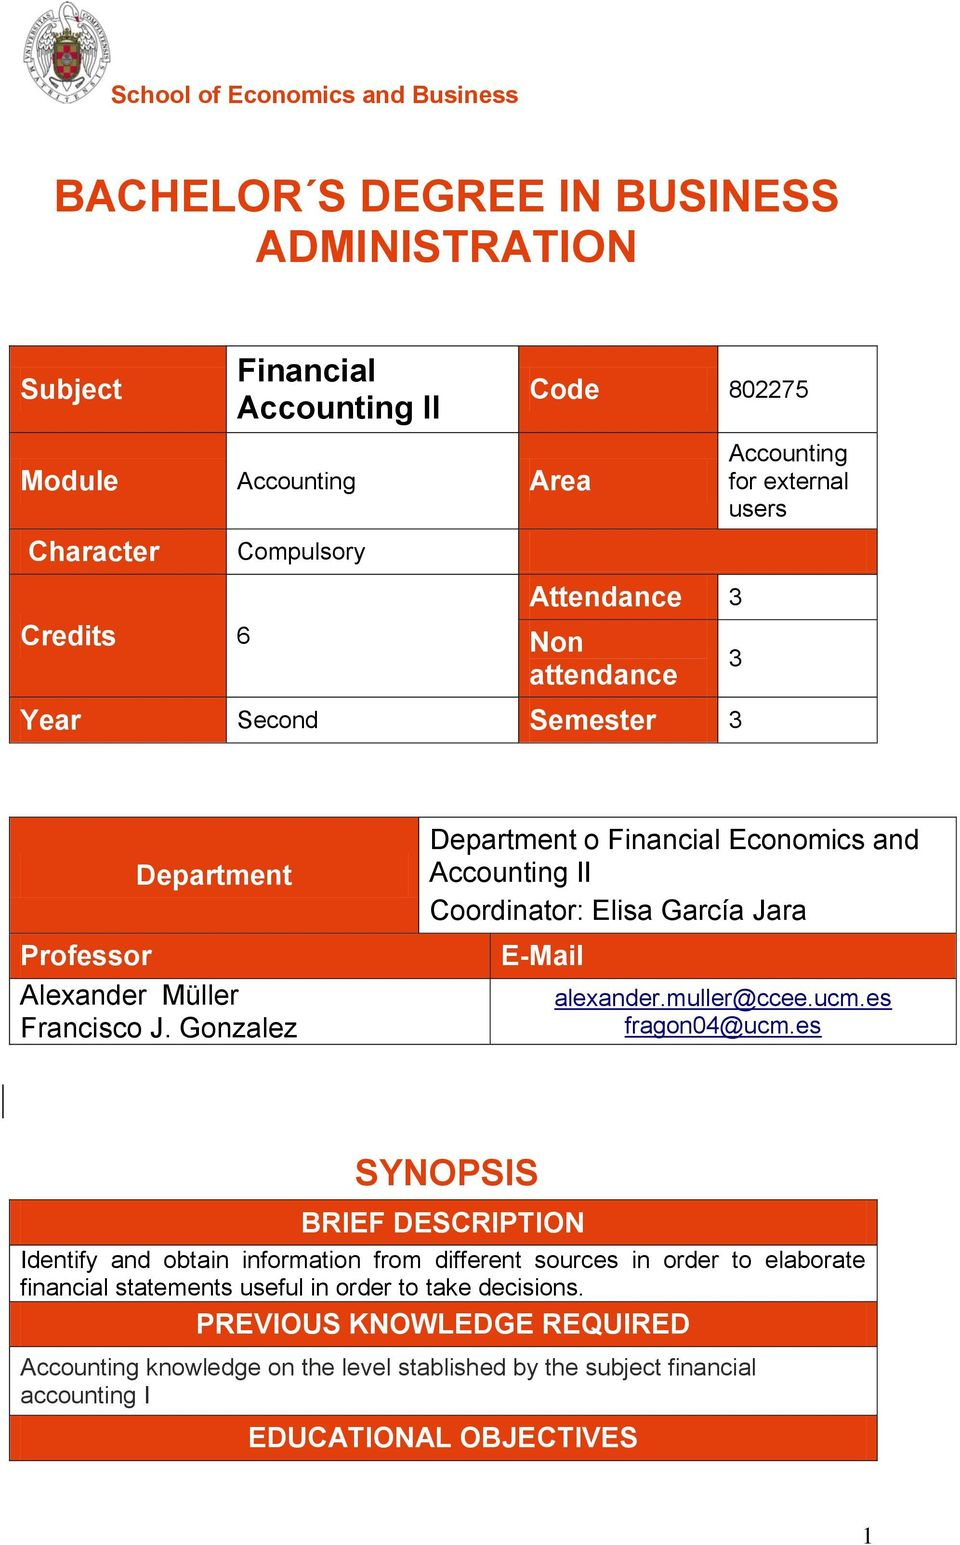 Gonzalez Department o Financial Economics and Accounting II Coordinator: Elisa García Jara E-Mail alexander.muller@ccee.ucm.es fragon04@ucm.